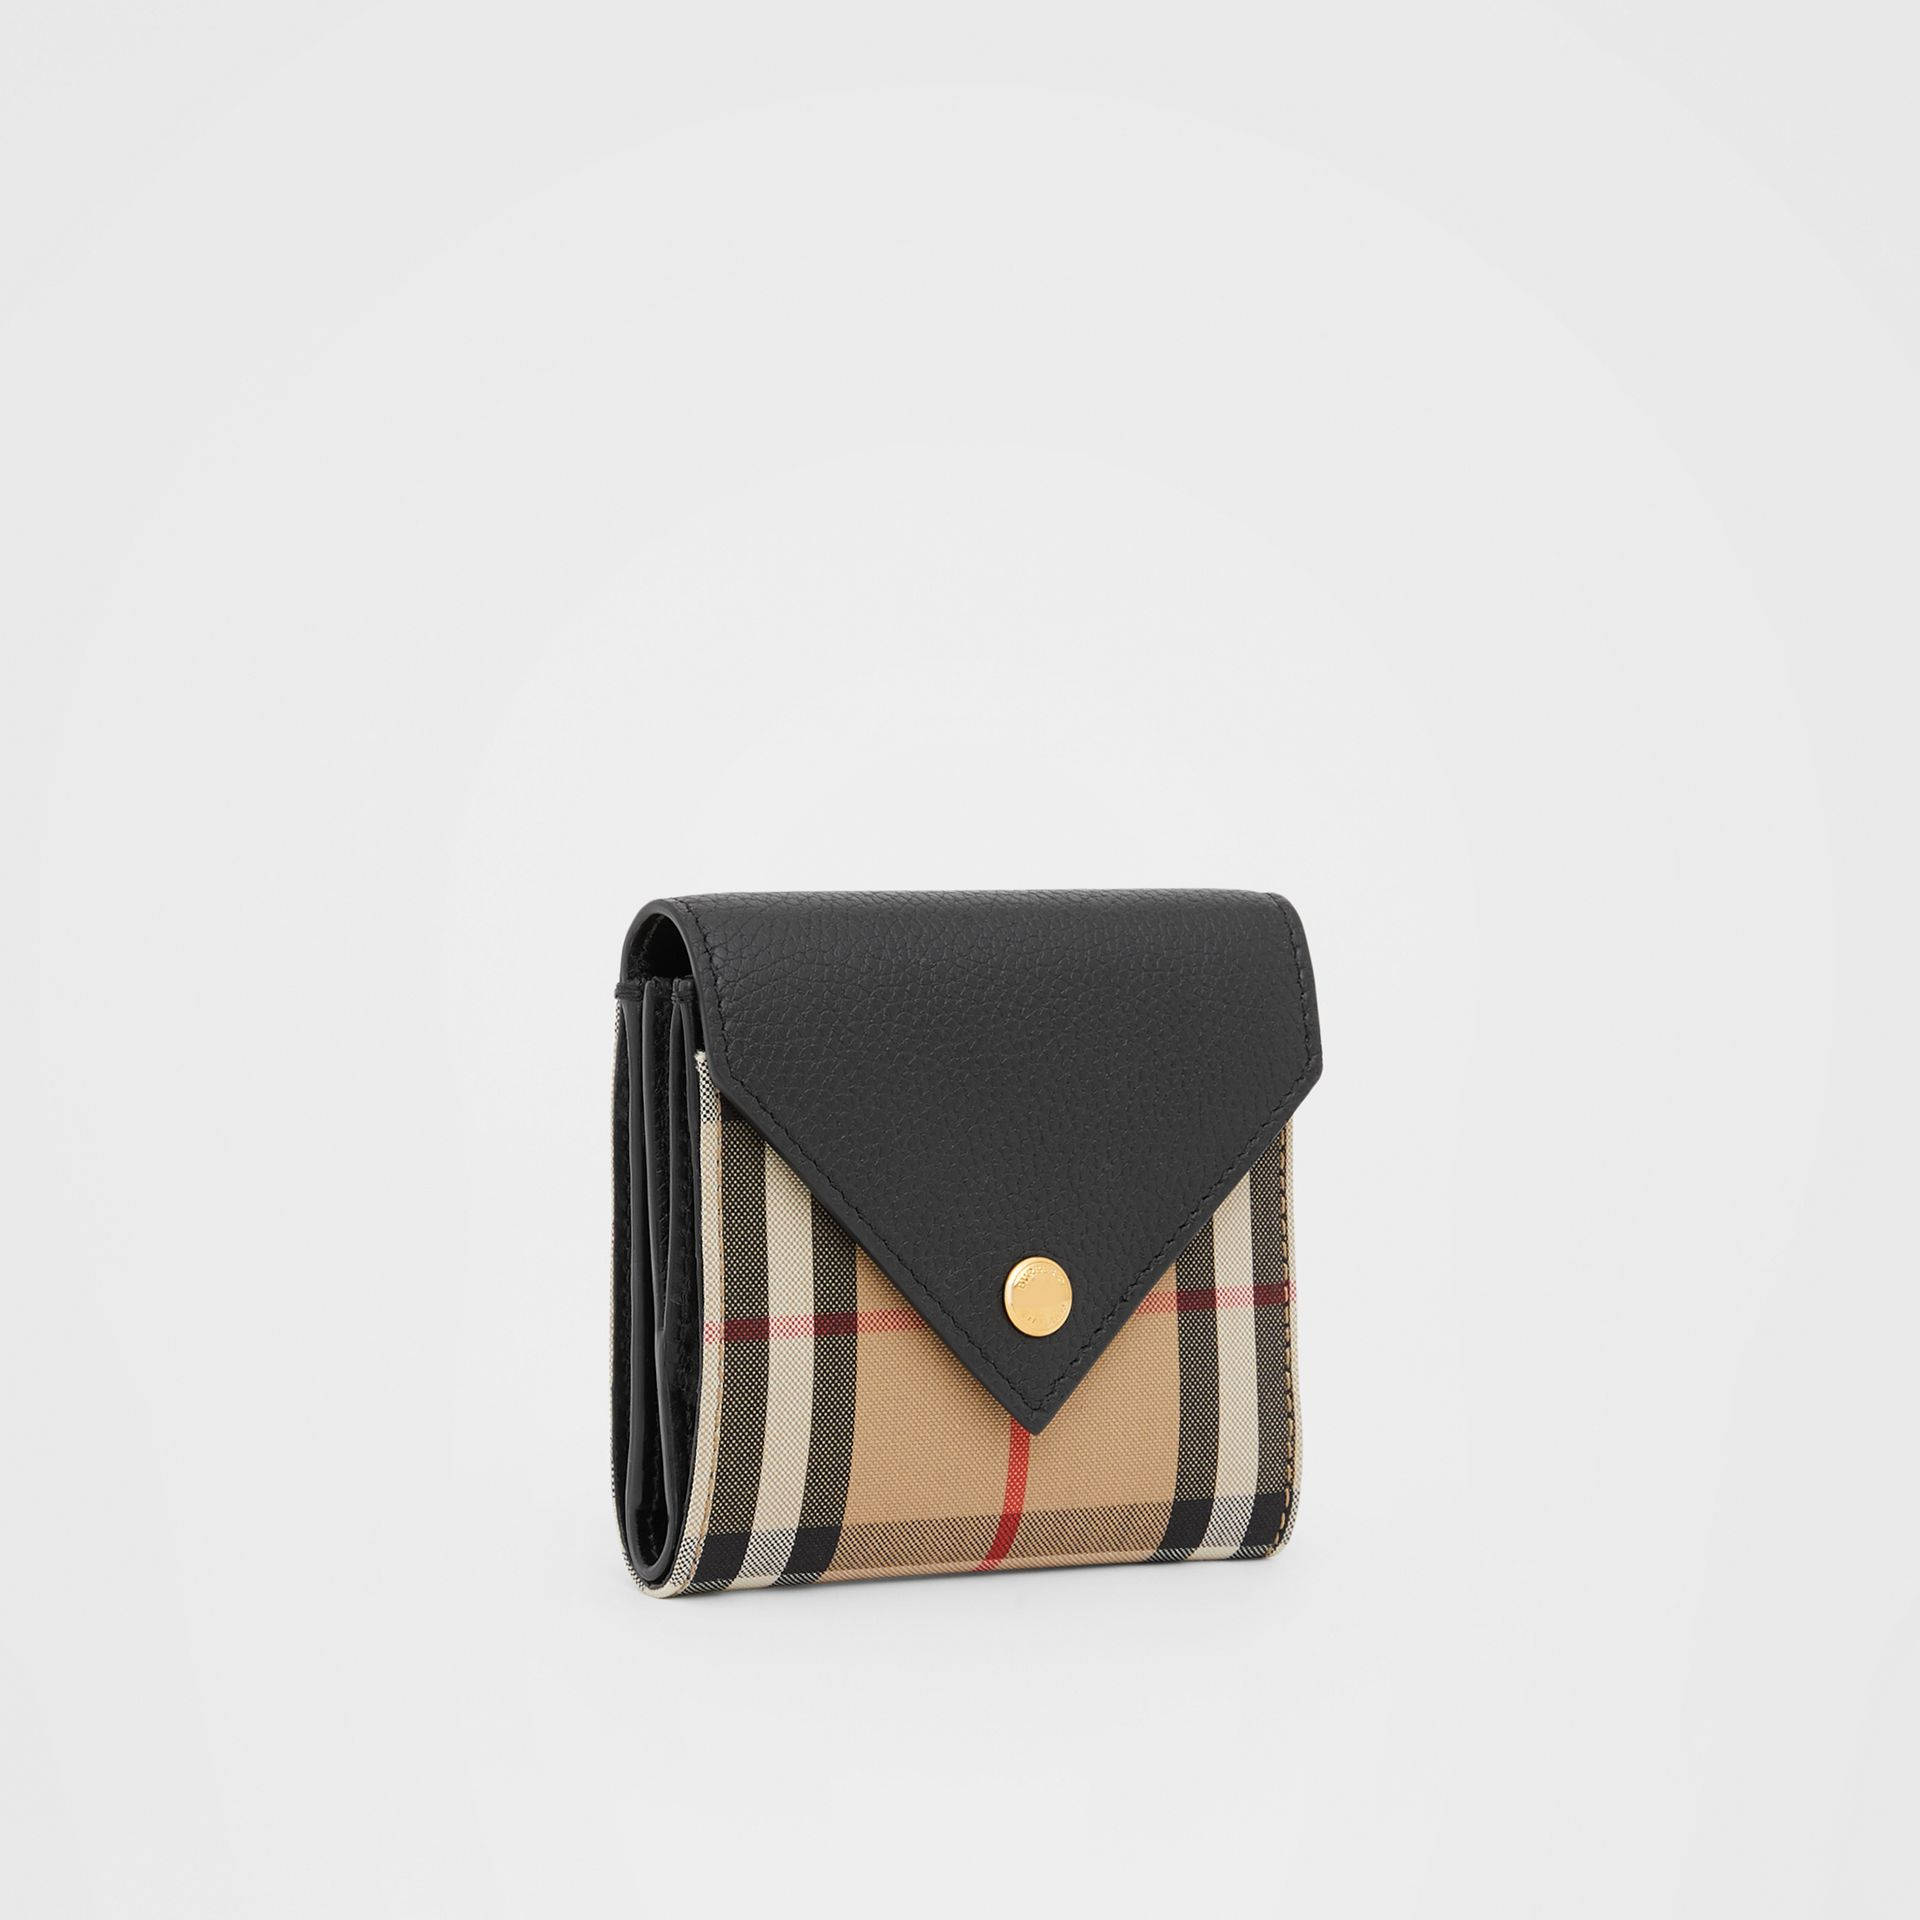 Vintage Check and Grainy Leather Folding Wallet in Black - Women | Burberry Hong Kong S.A.R - gallery image 3